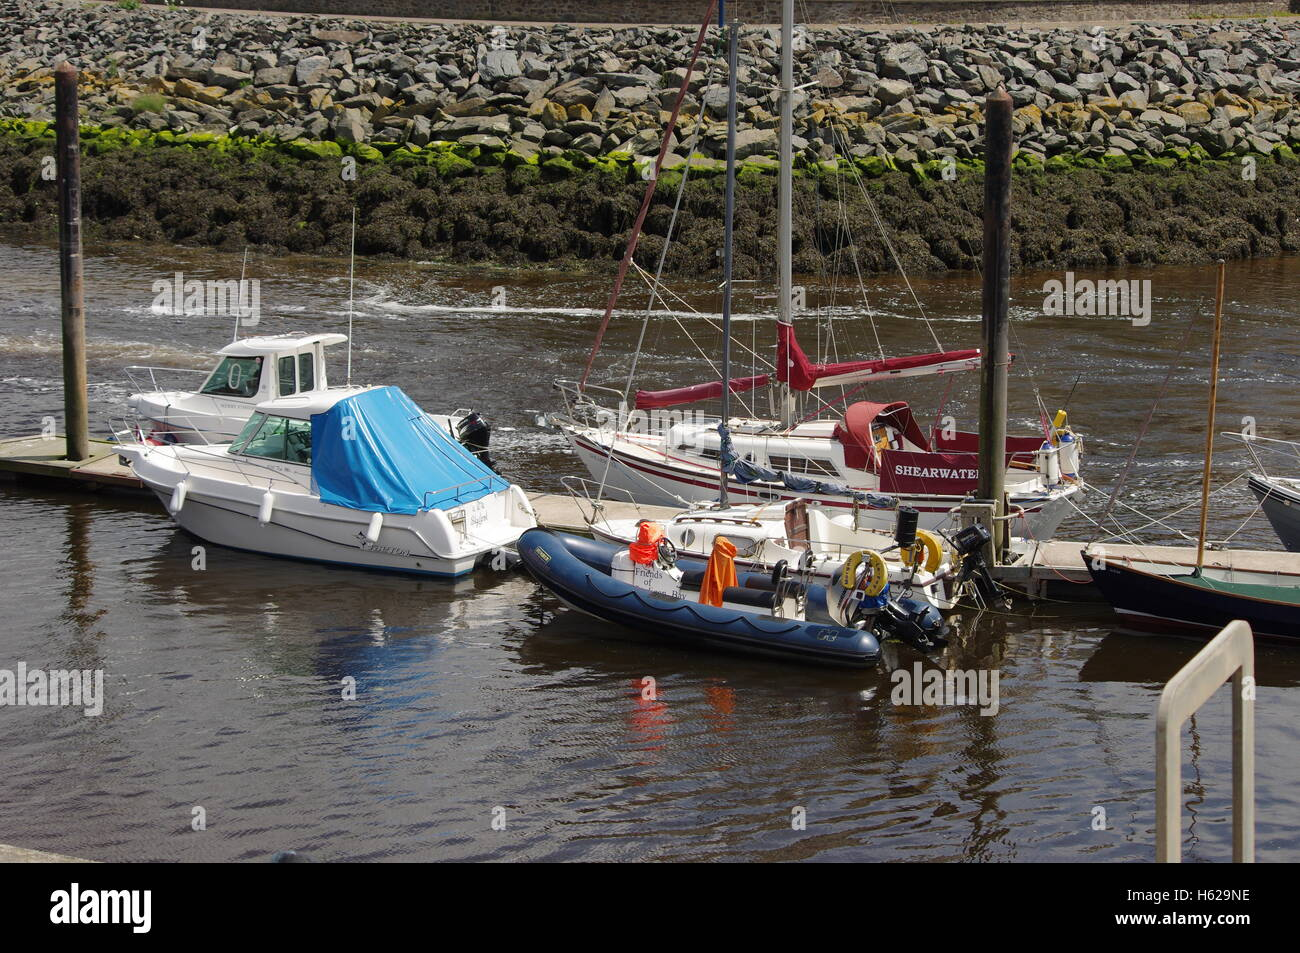 View overlooking the boats at Aberystwyth Harbour / Marina. Stock Photo